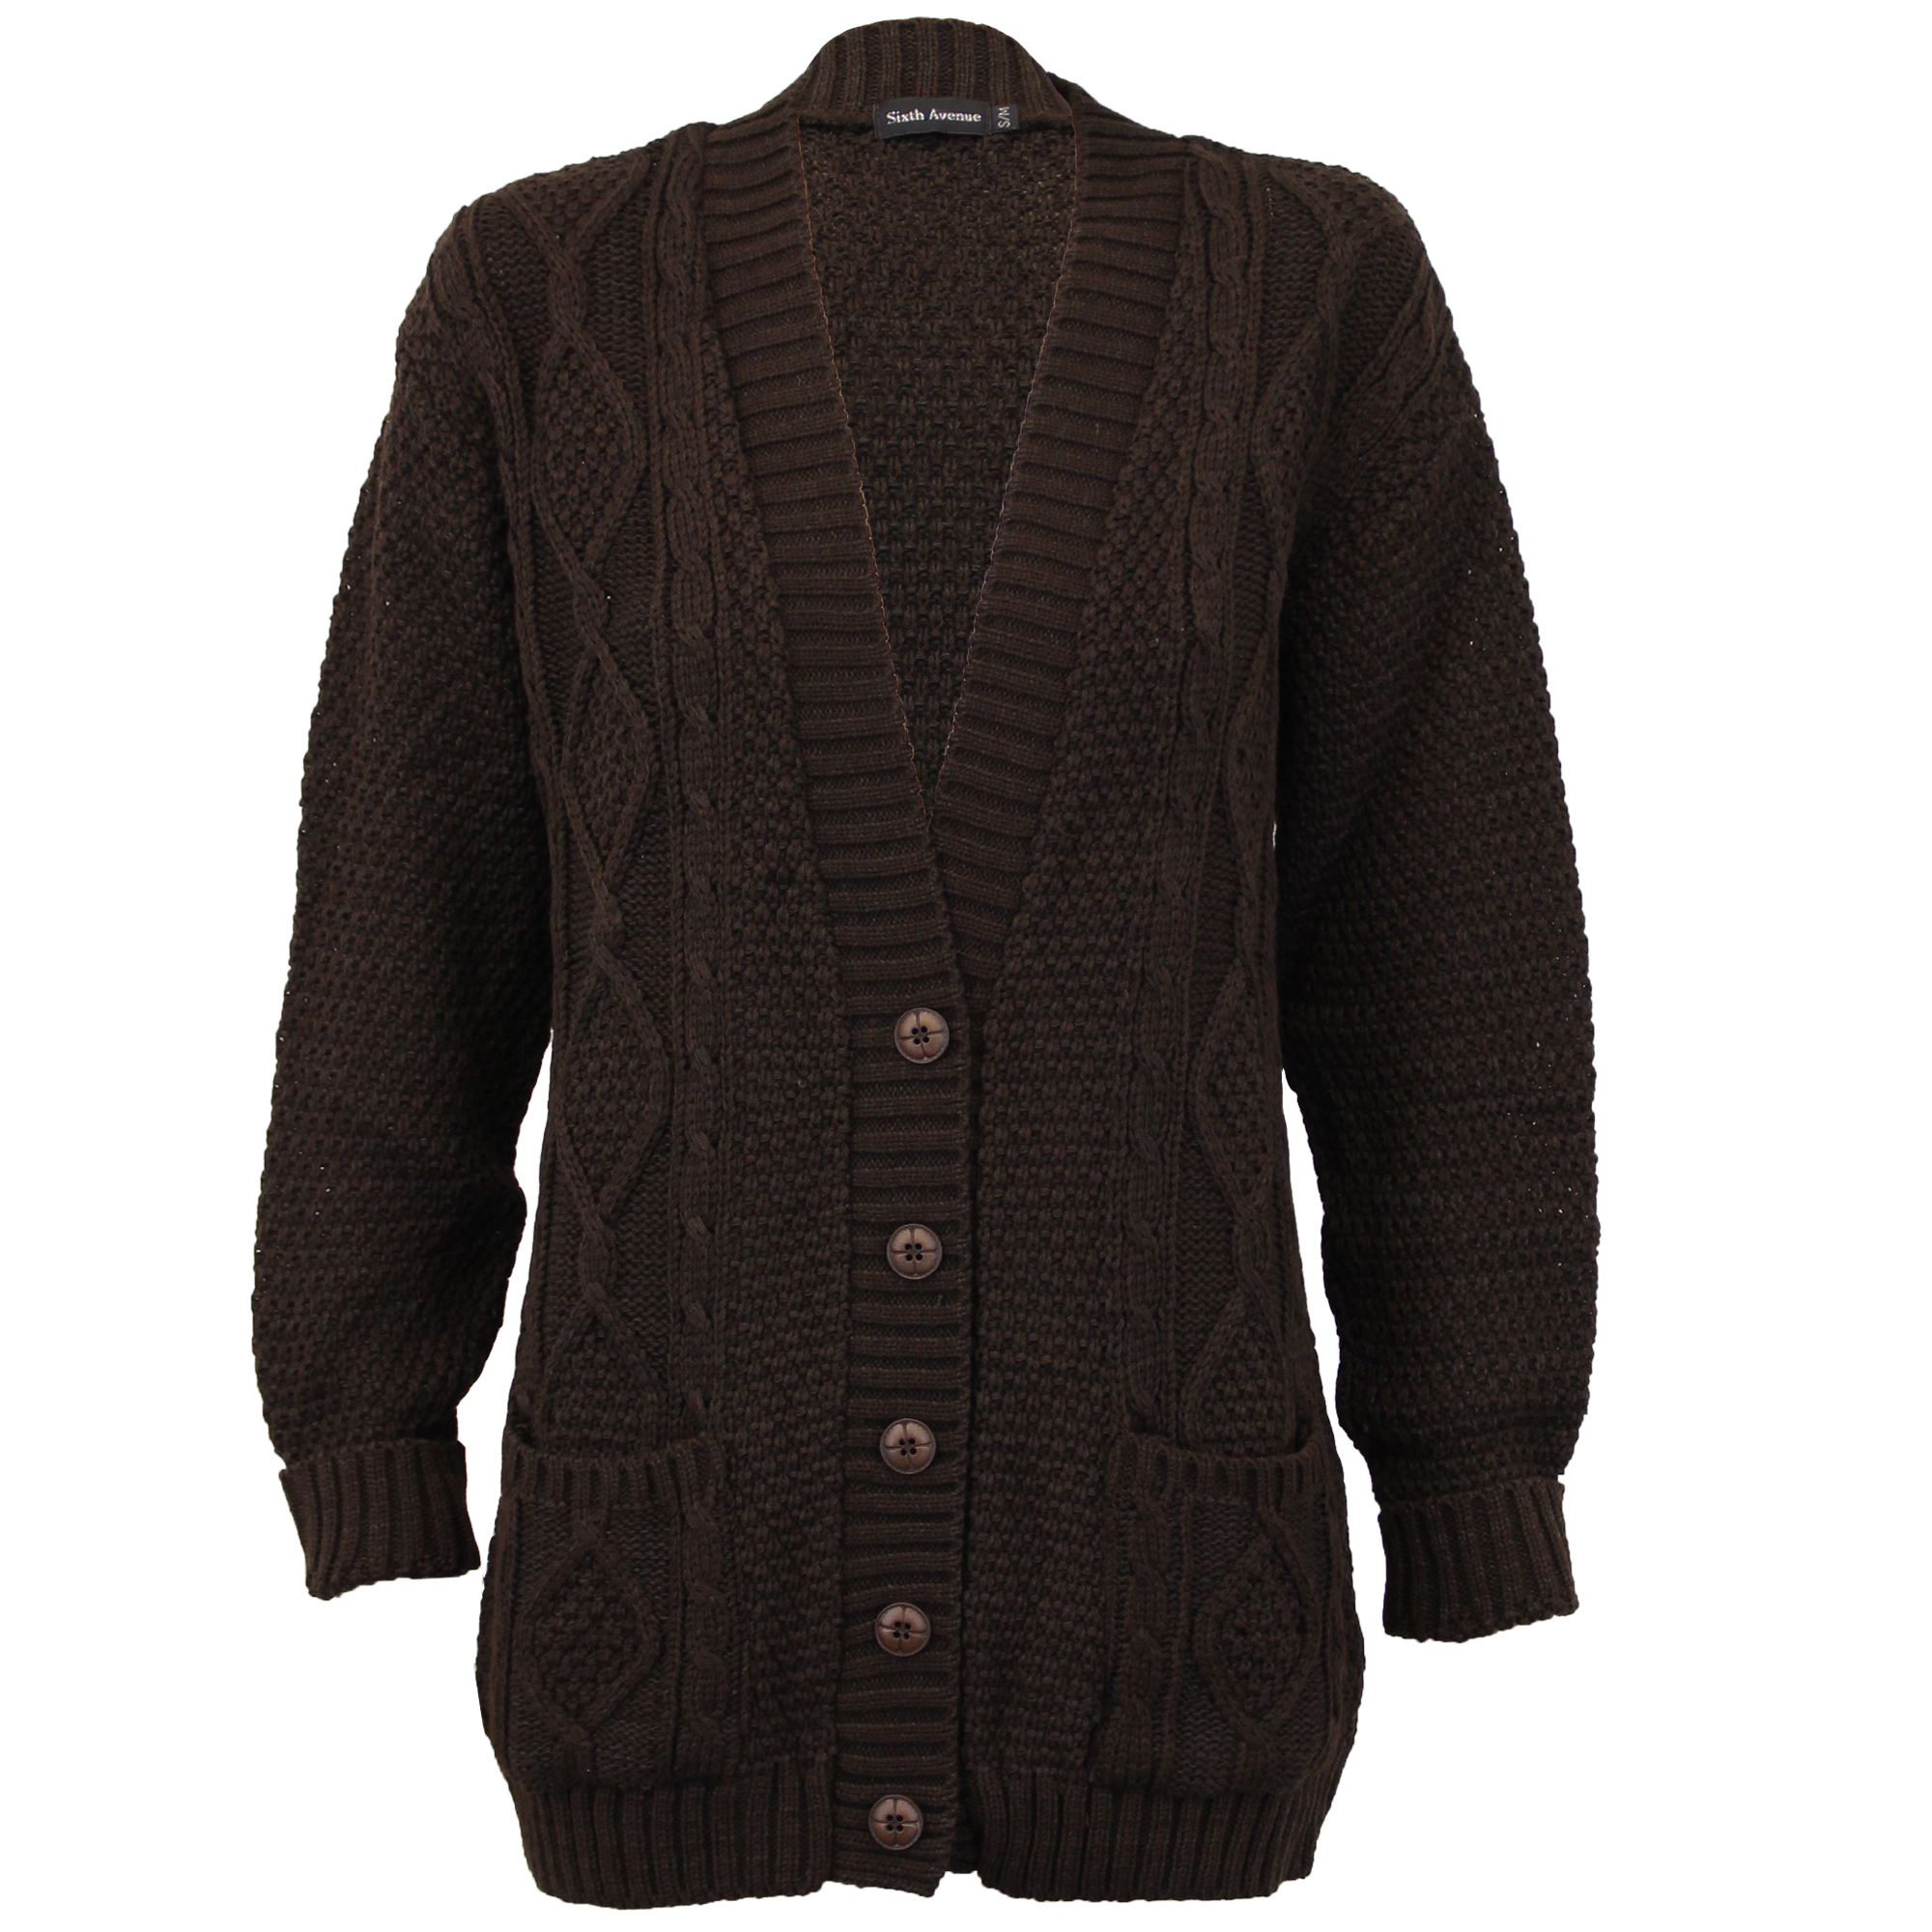 Knitting Cardigan For Ladies : Ladies cardigans womens knitted jumper cable jacquard